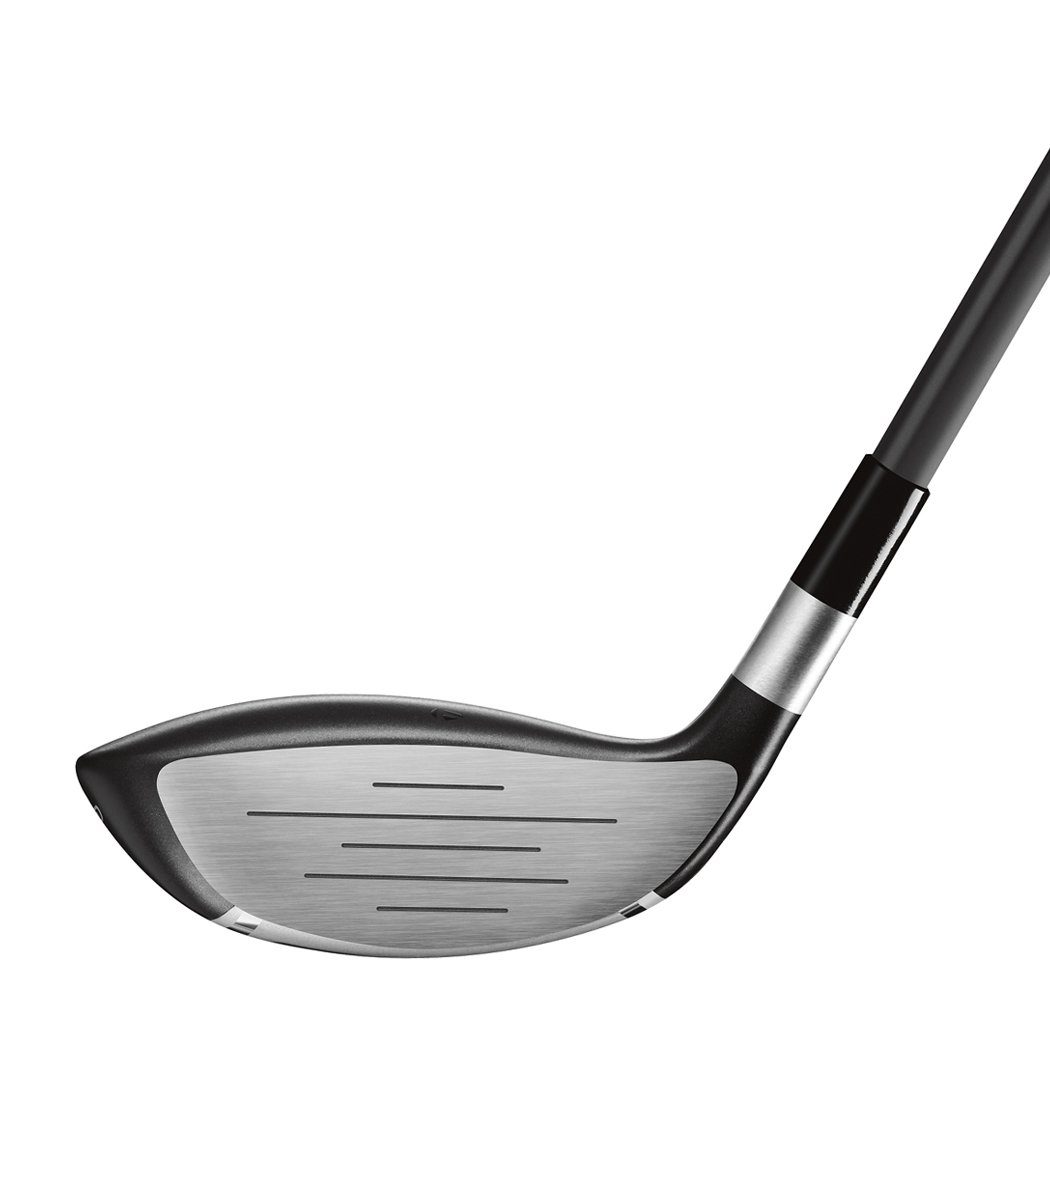 TaylorMade N1122407 JetSpeed Golf Rescue Men s, Right-Handed, Regular, Graphite